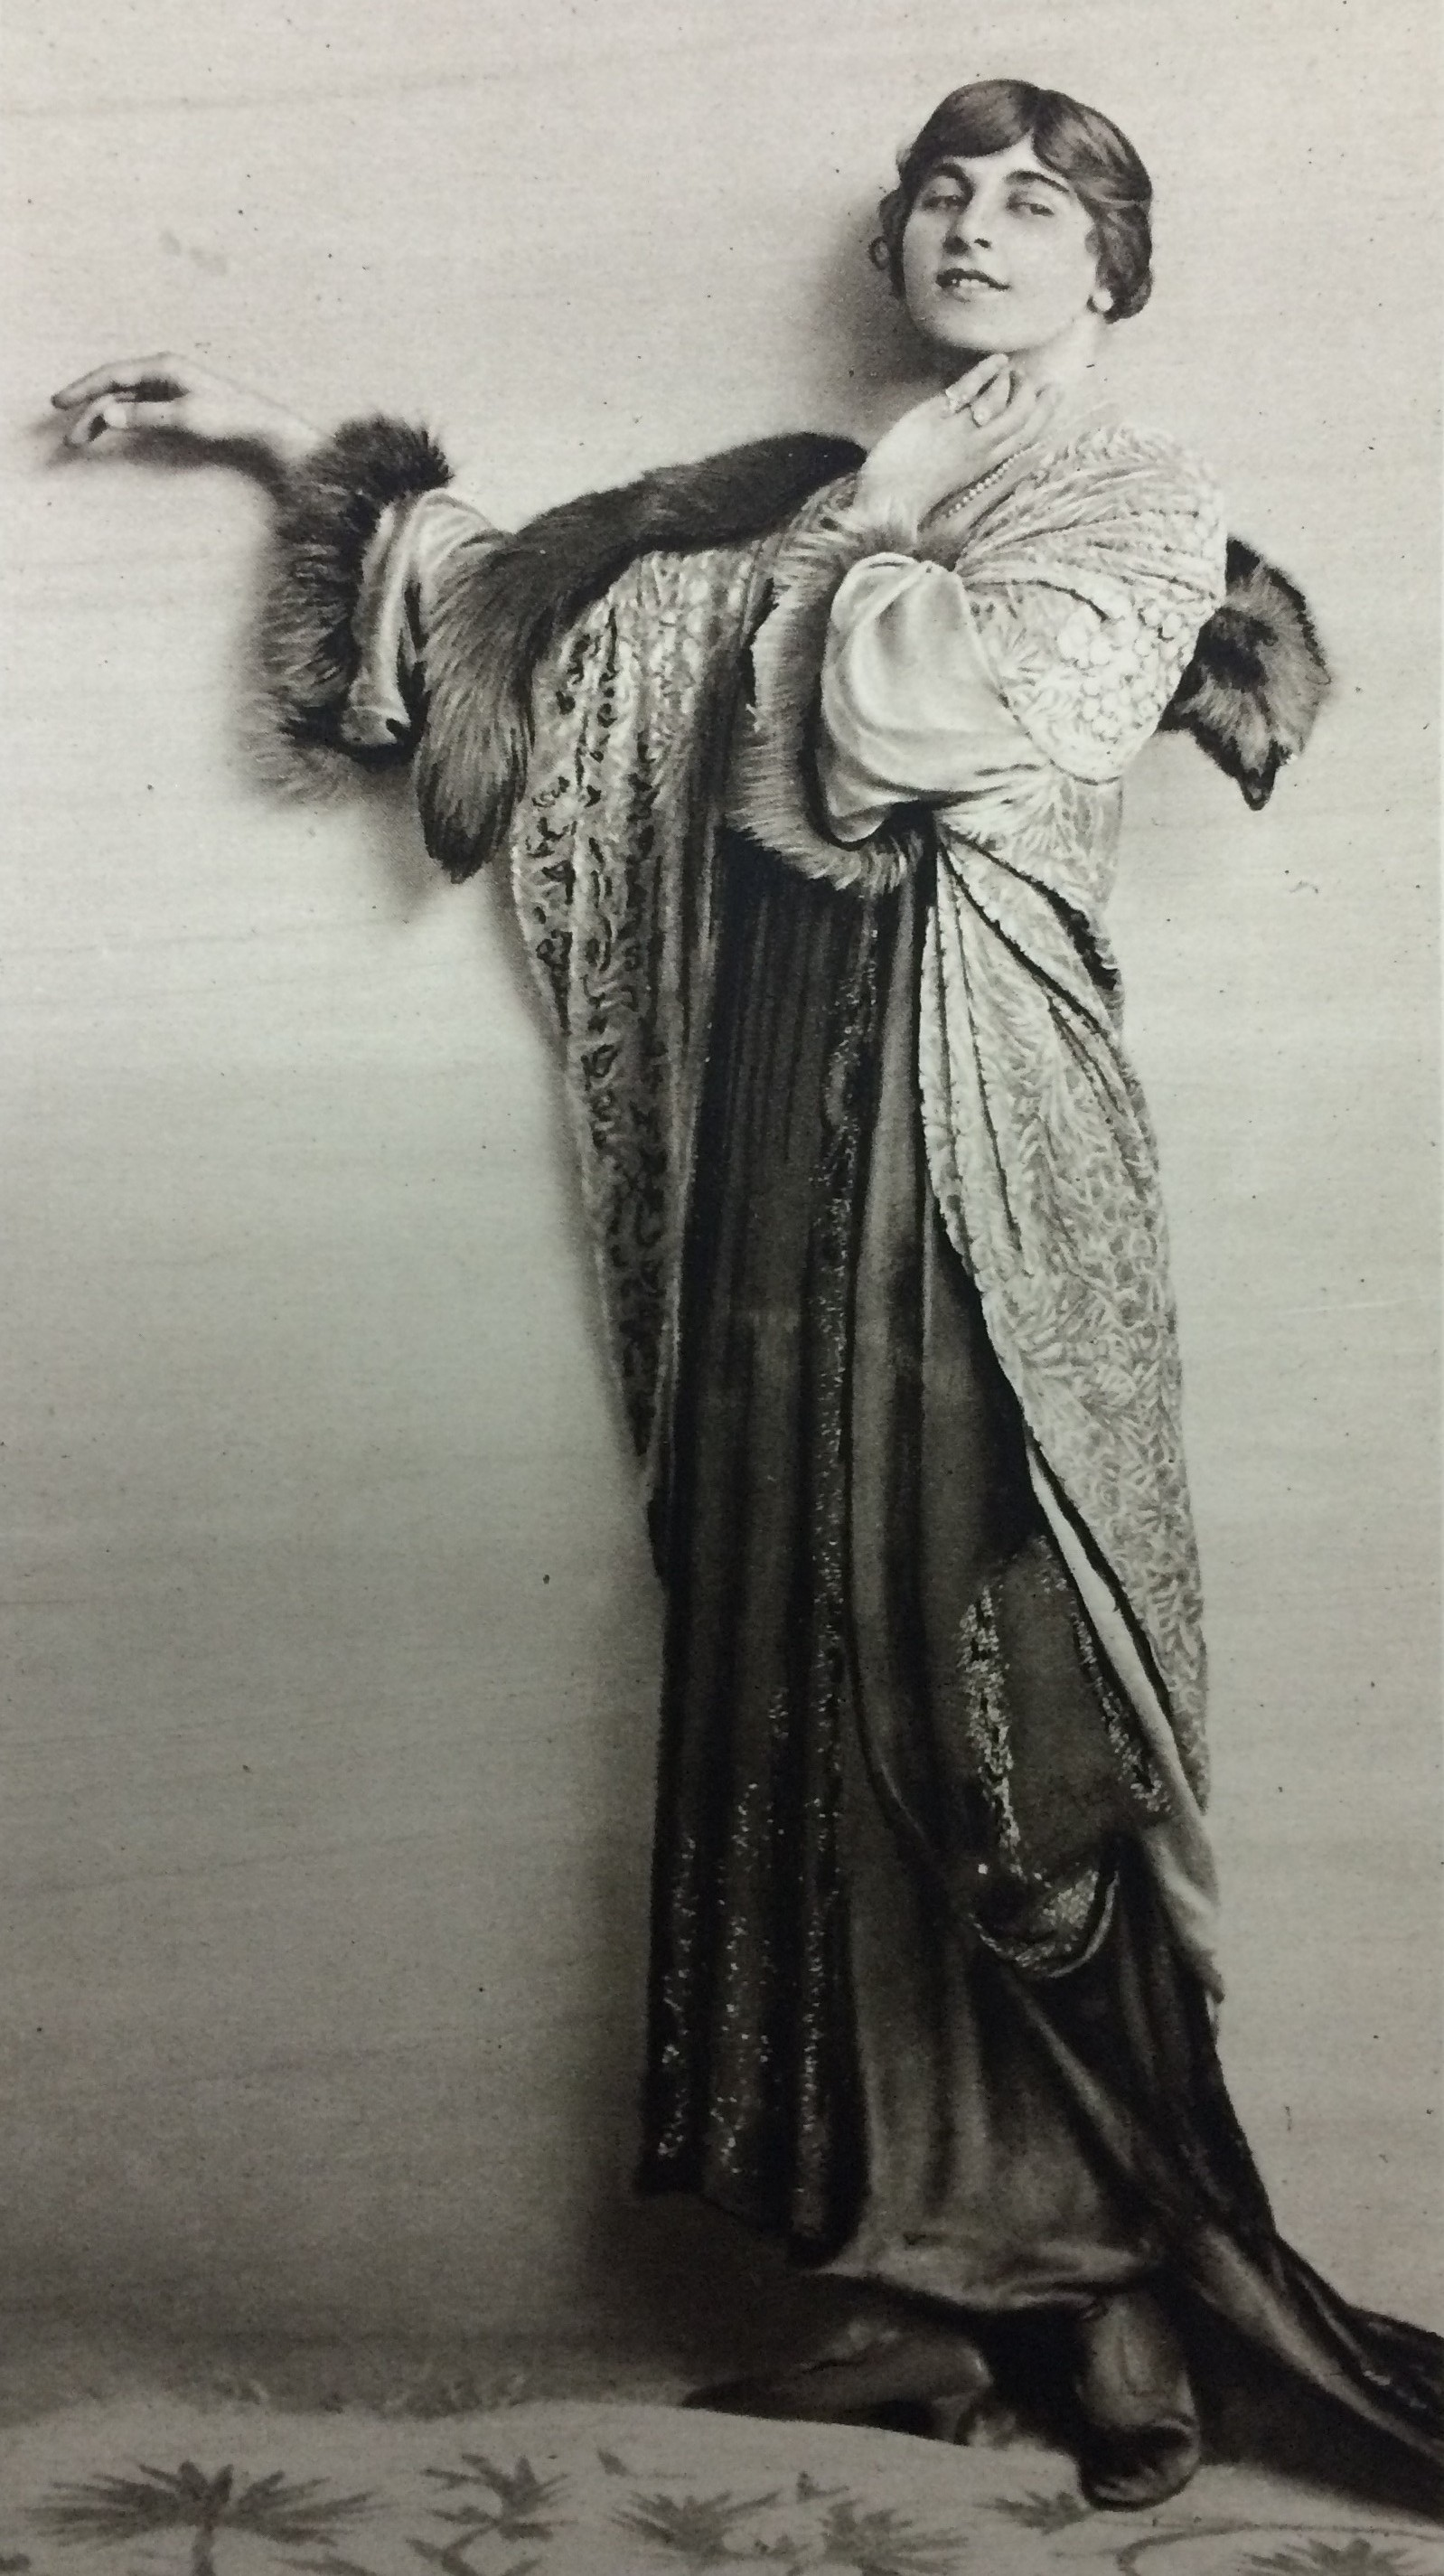 Ivy photographed by Foulsham & Banfield for 'The Sketch', 4 September 1918